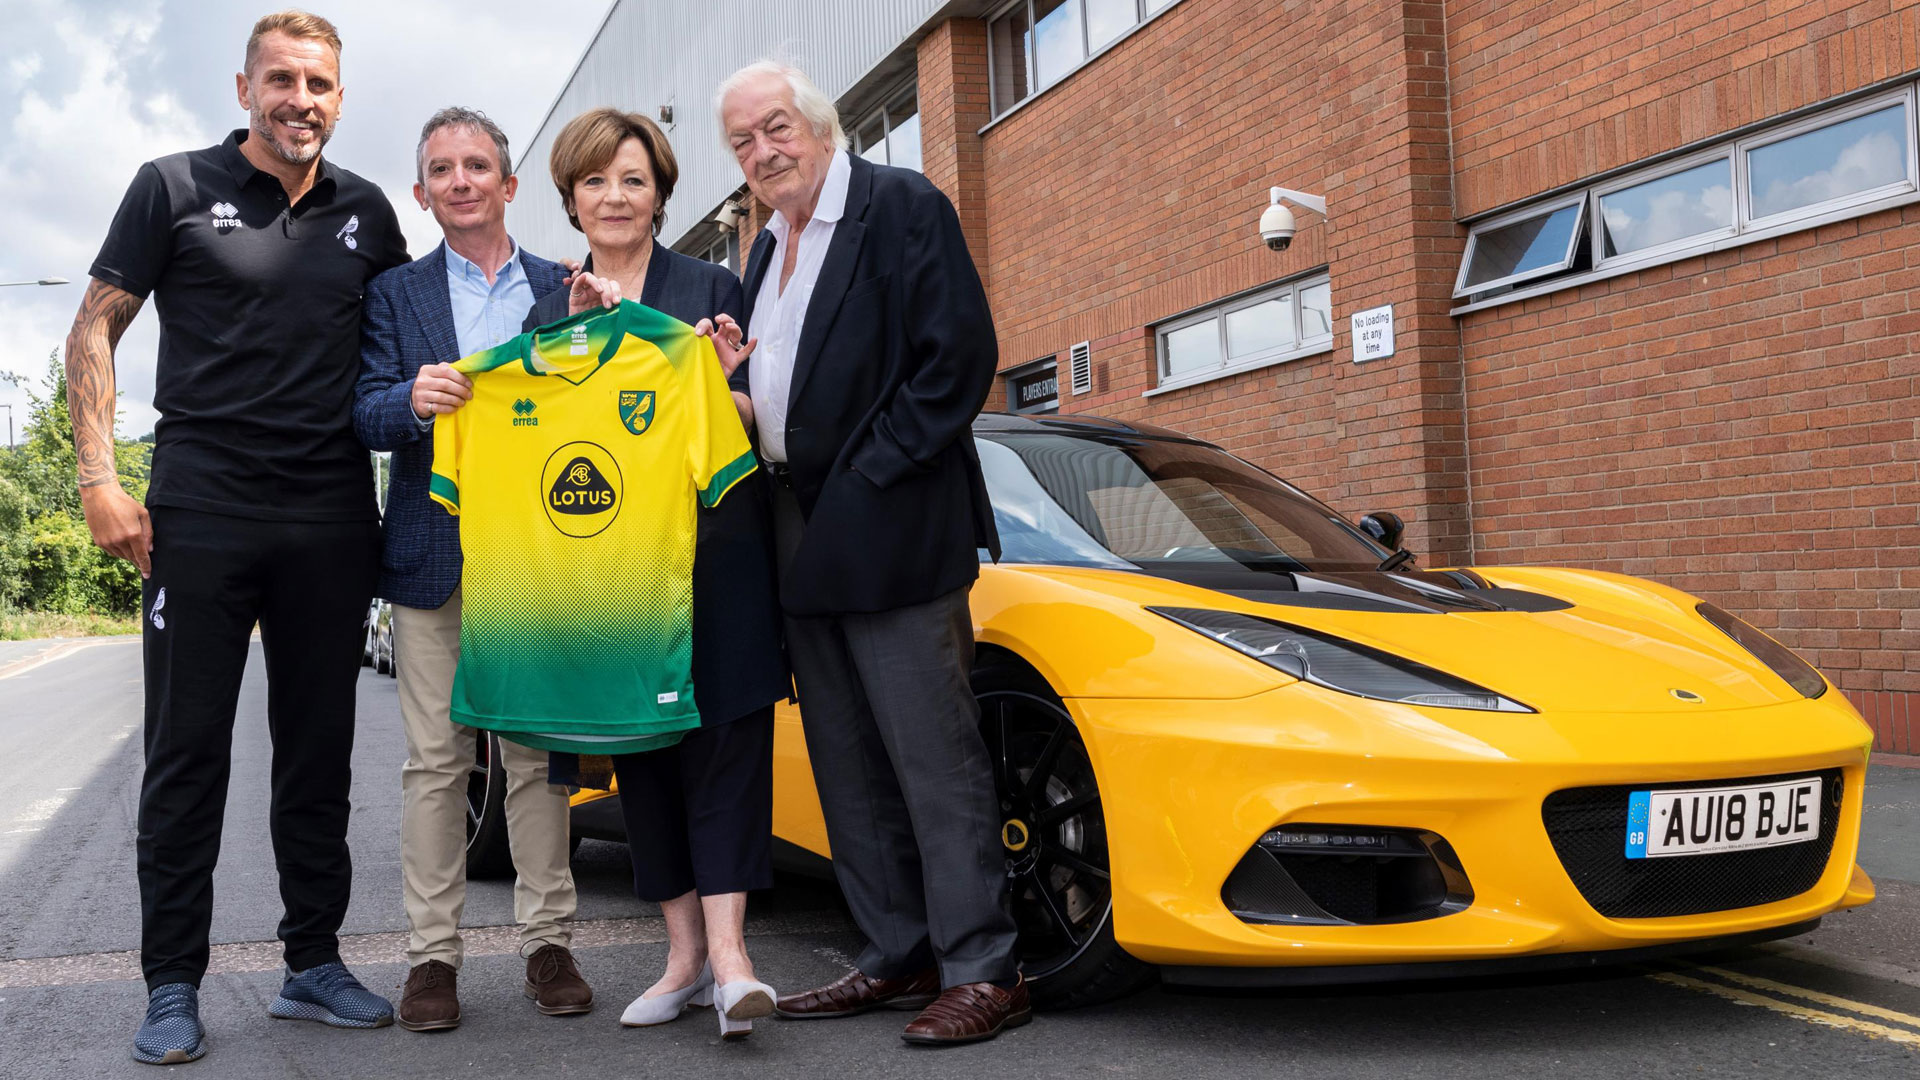 Norwich City sign Lotus Cars on Deadline Day